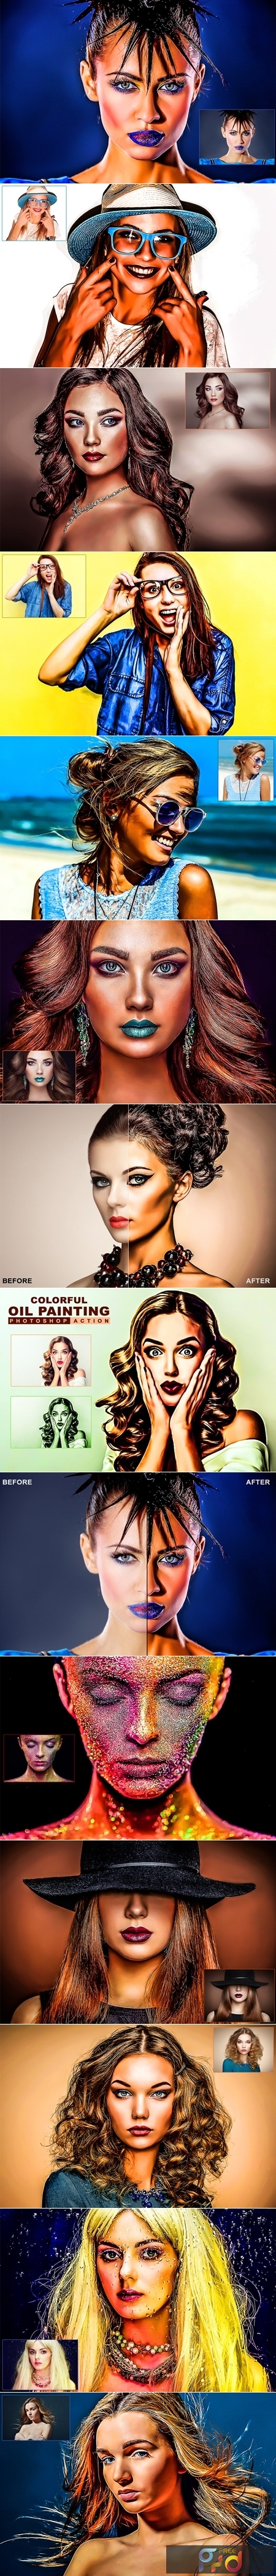 Colorful Oil Painting Photoshop Action 3177435 1